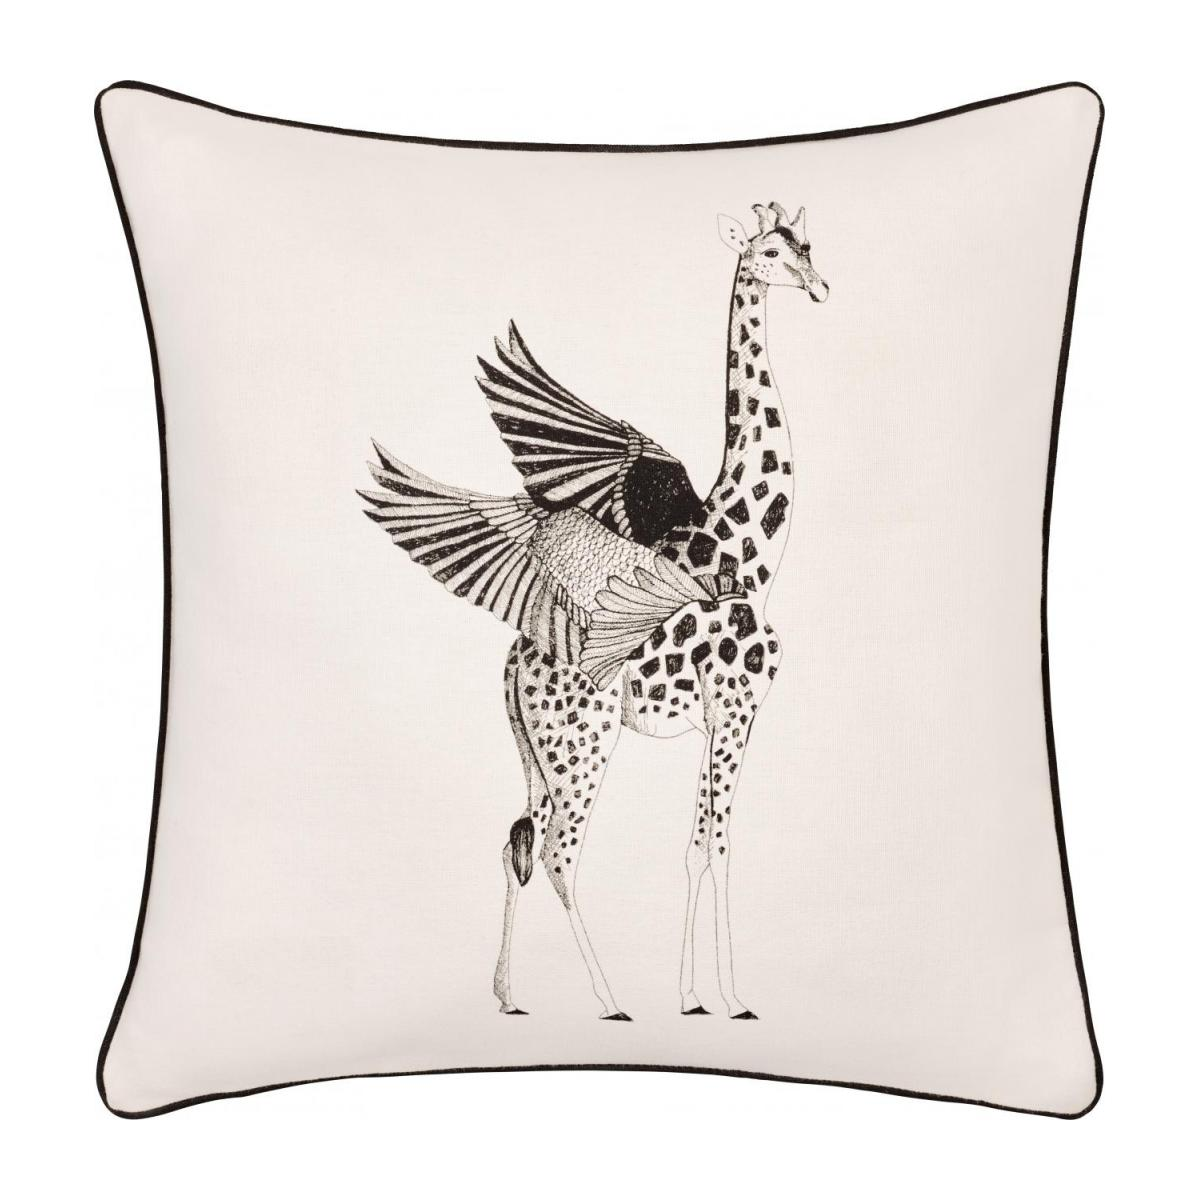 Giraffe Patterned Printed Cotton Cushion 40x40cm n°1